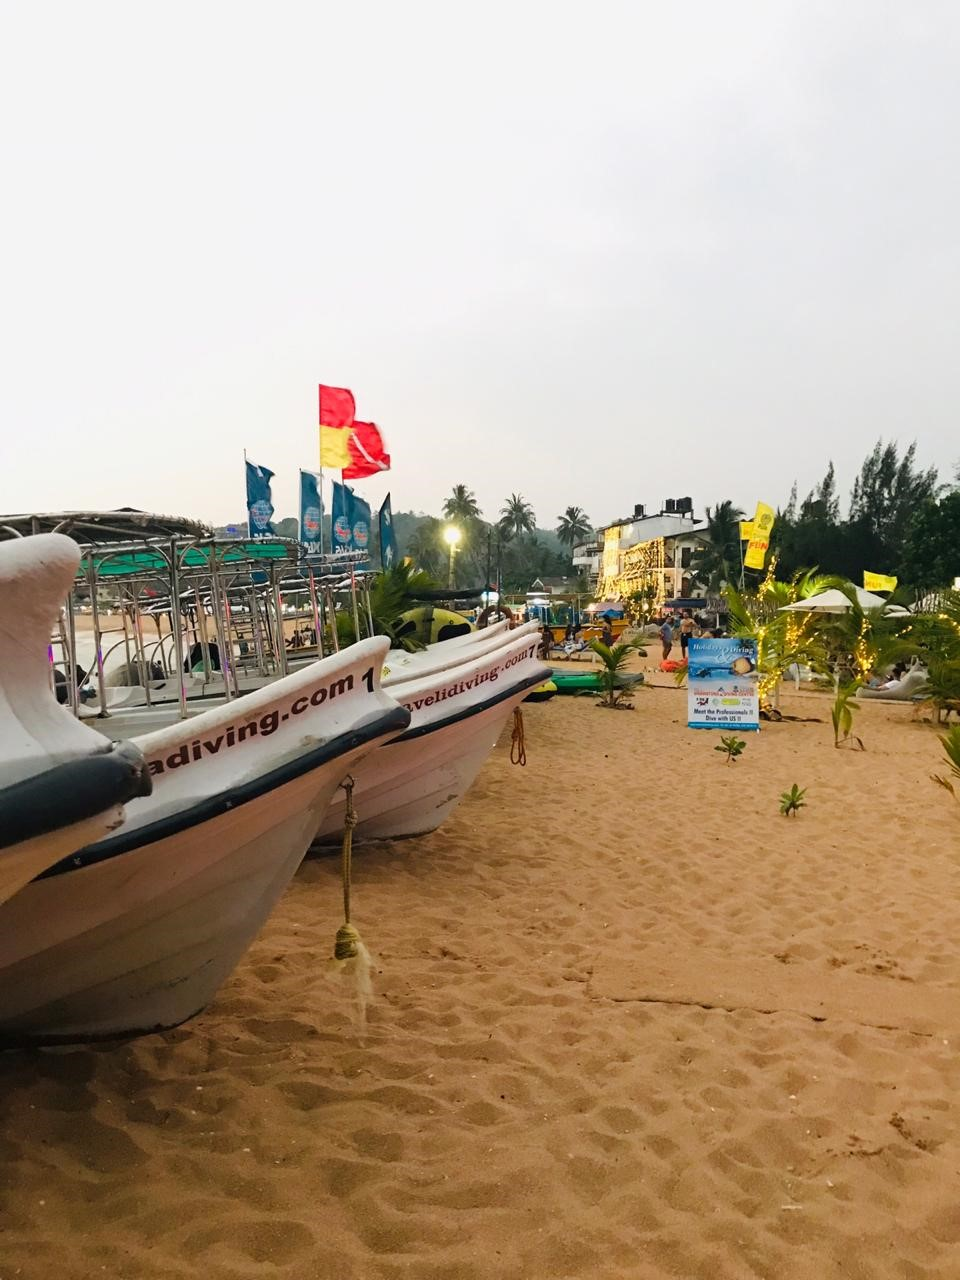 Boats docked by the beach-side